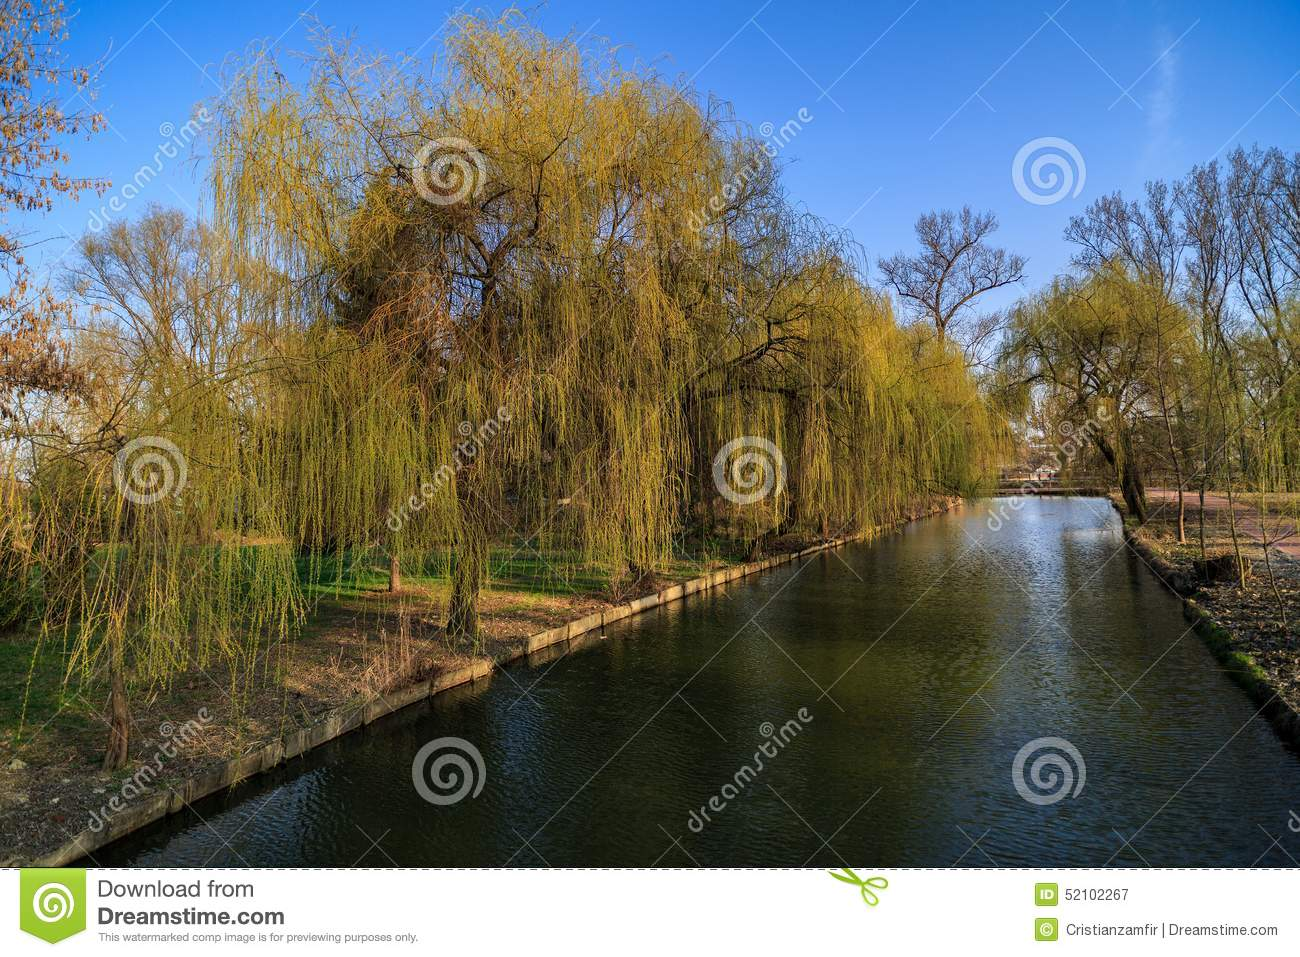 Weeping willow on the shore of a lake